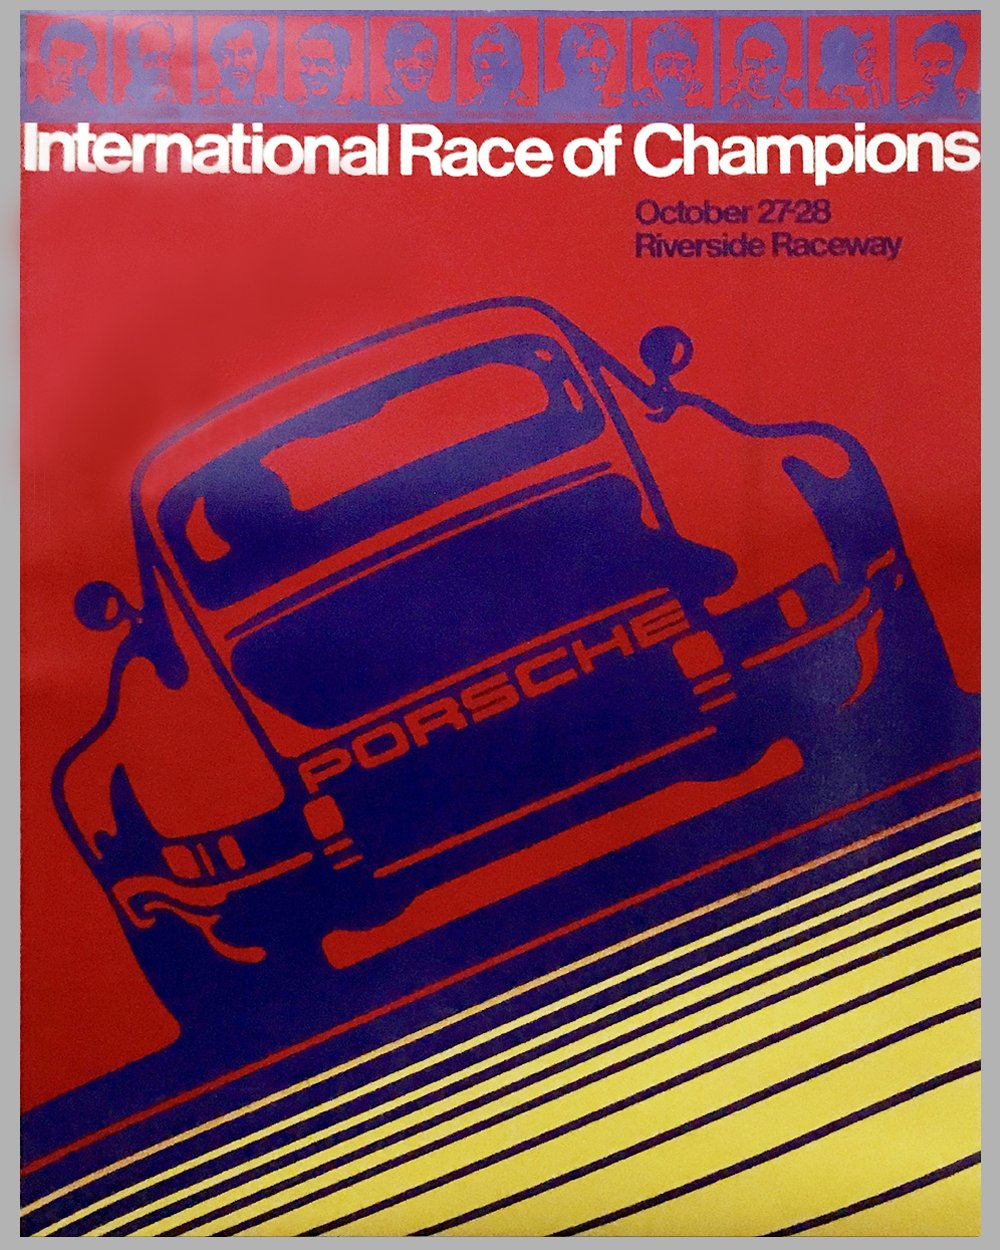 1973 Porsche Victory Poster - For the IROC at Riverside Raceway